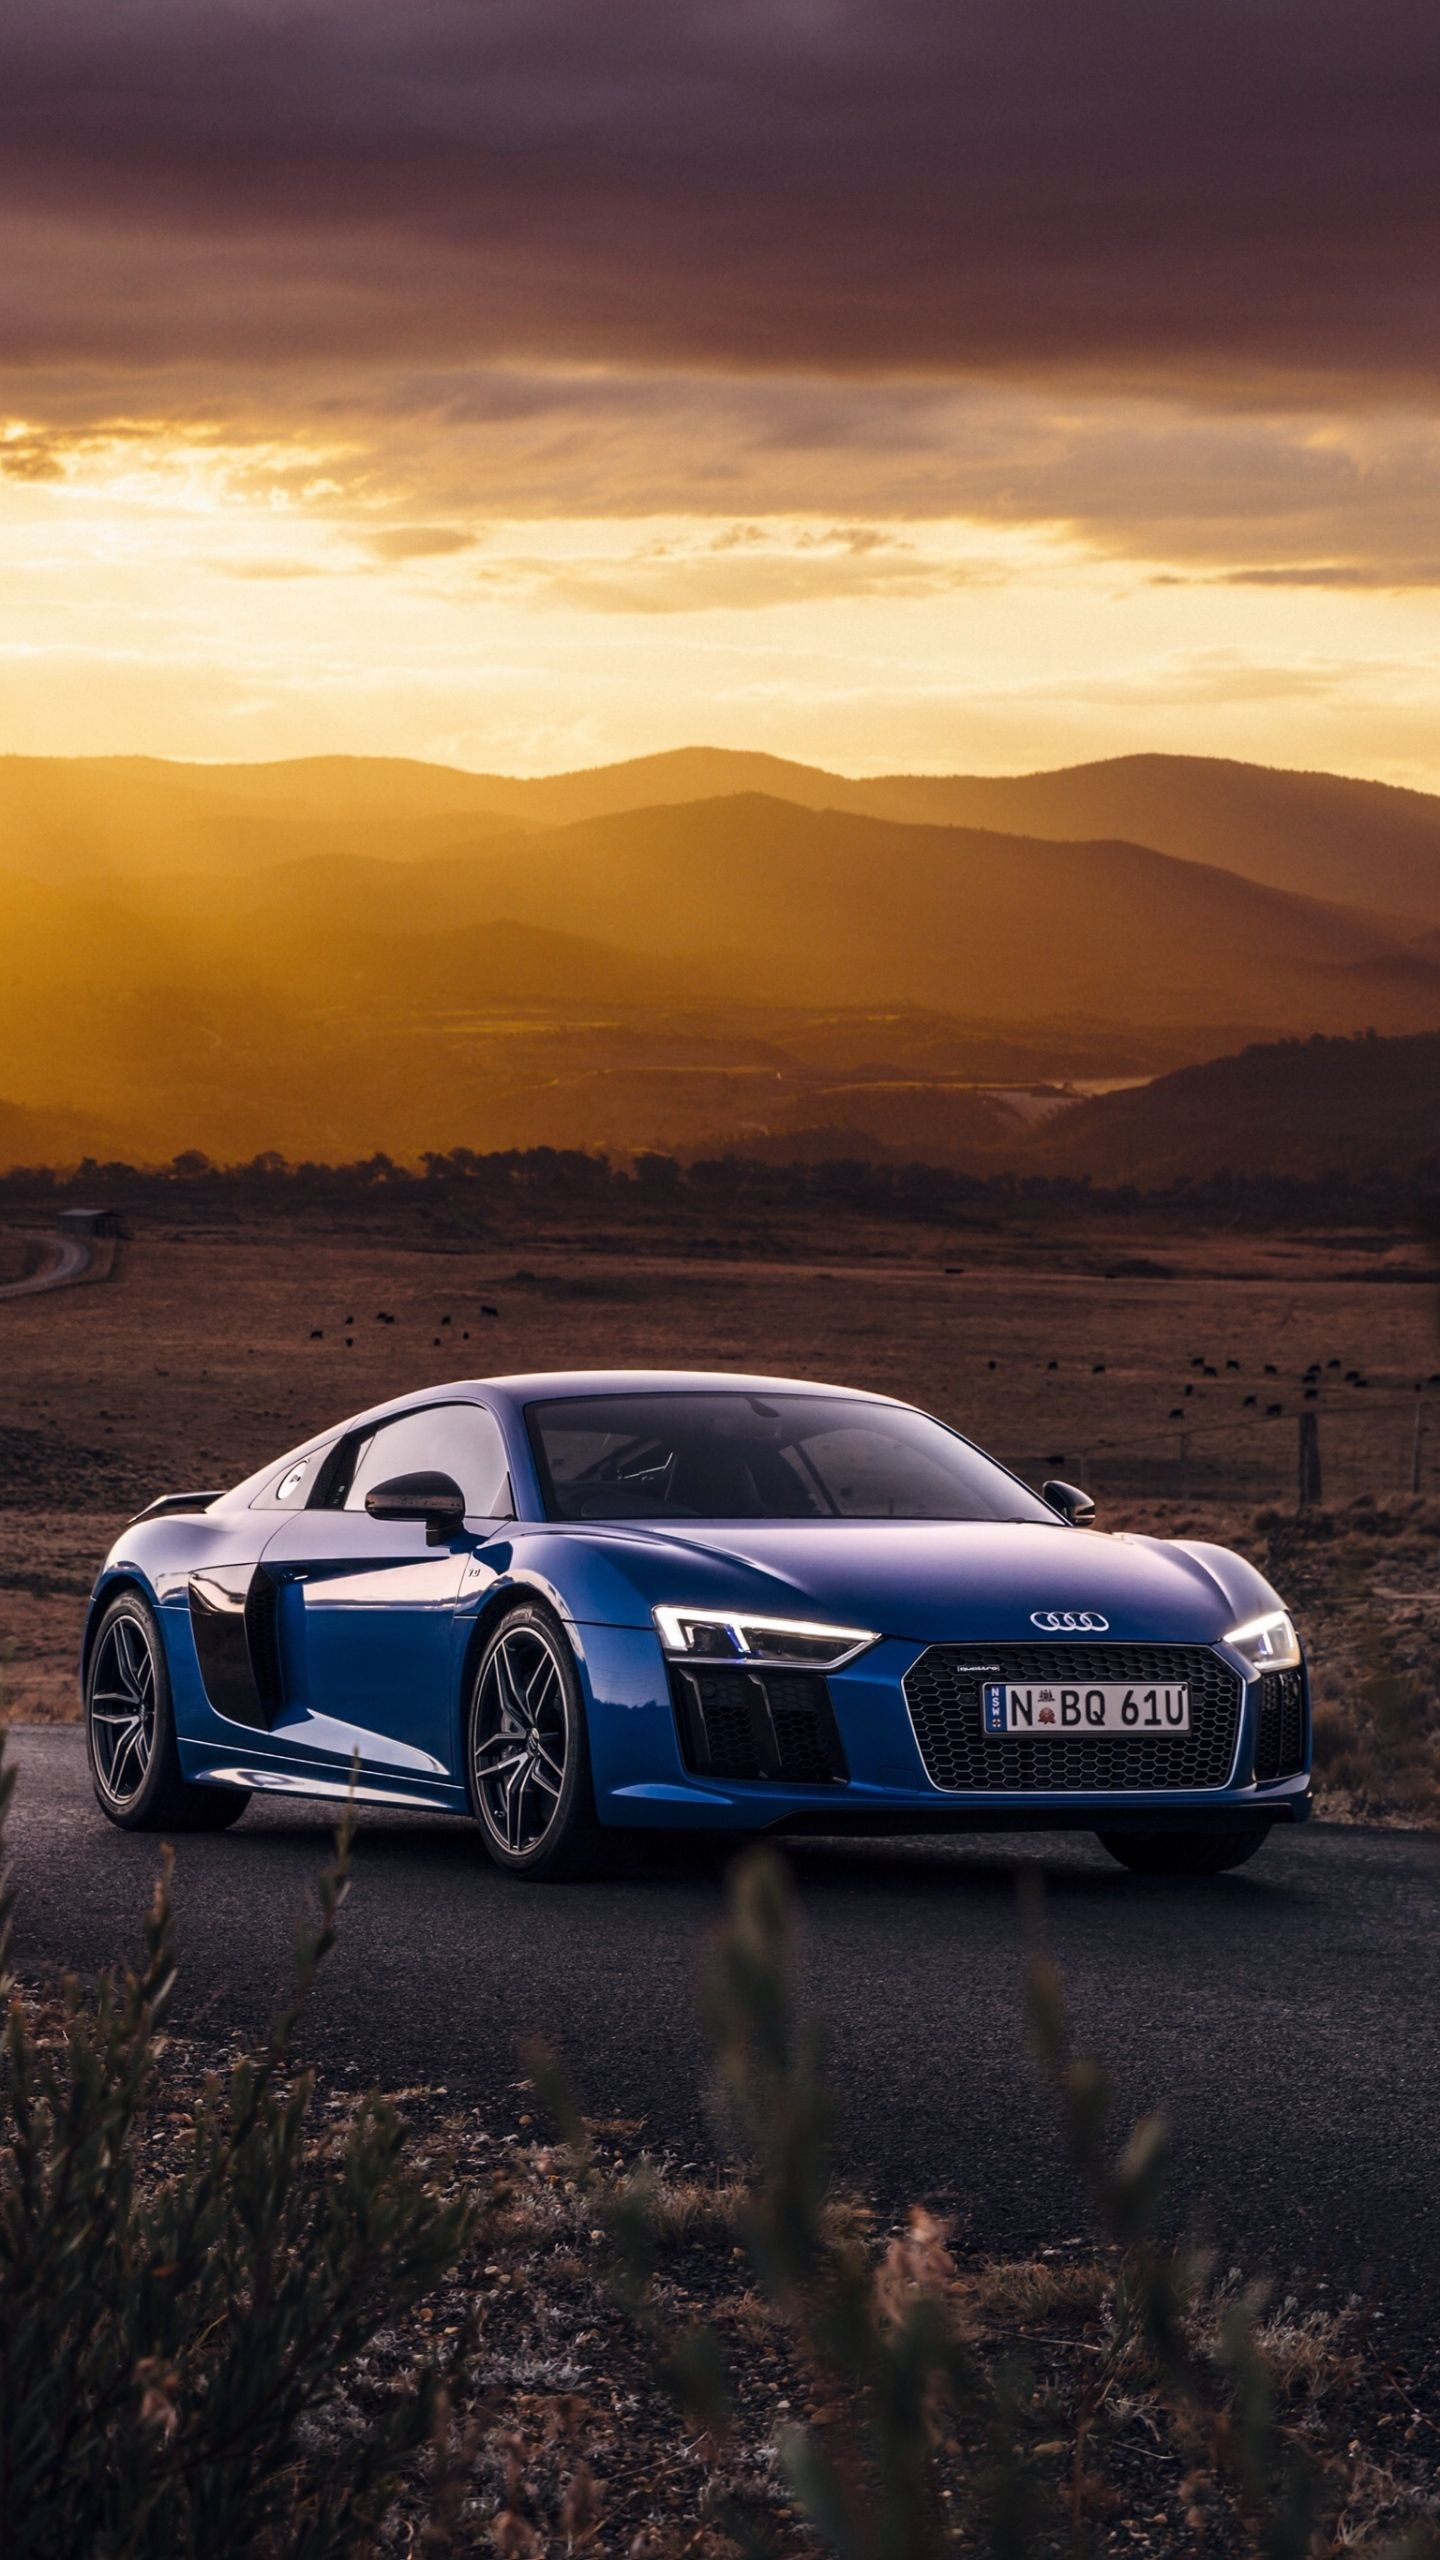 Audi R8 Road Mobile Hd Wallpaper Audi R8 Wallpaper Luxury Cars Audi Audi